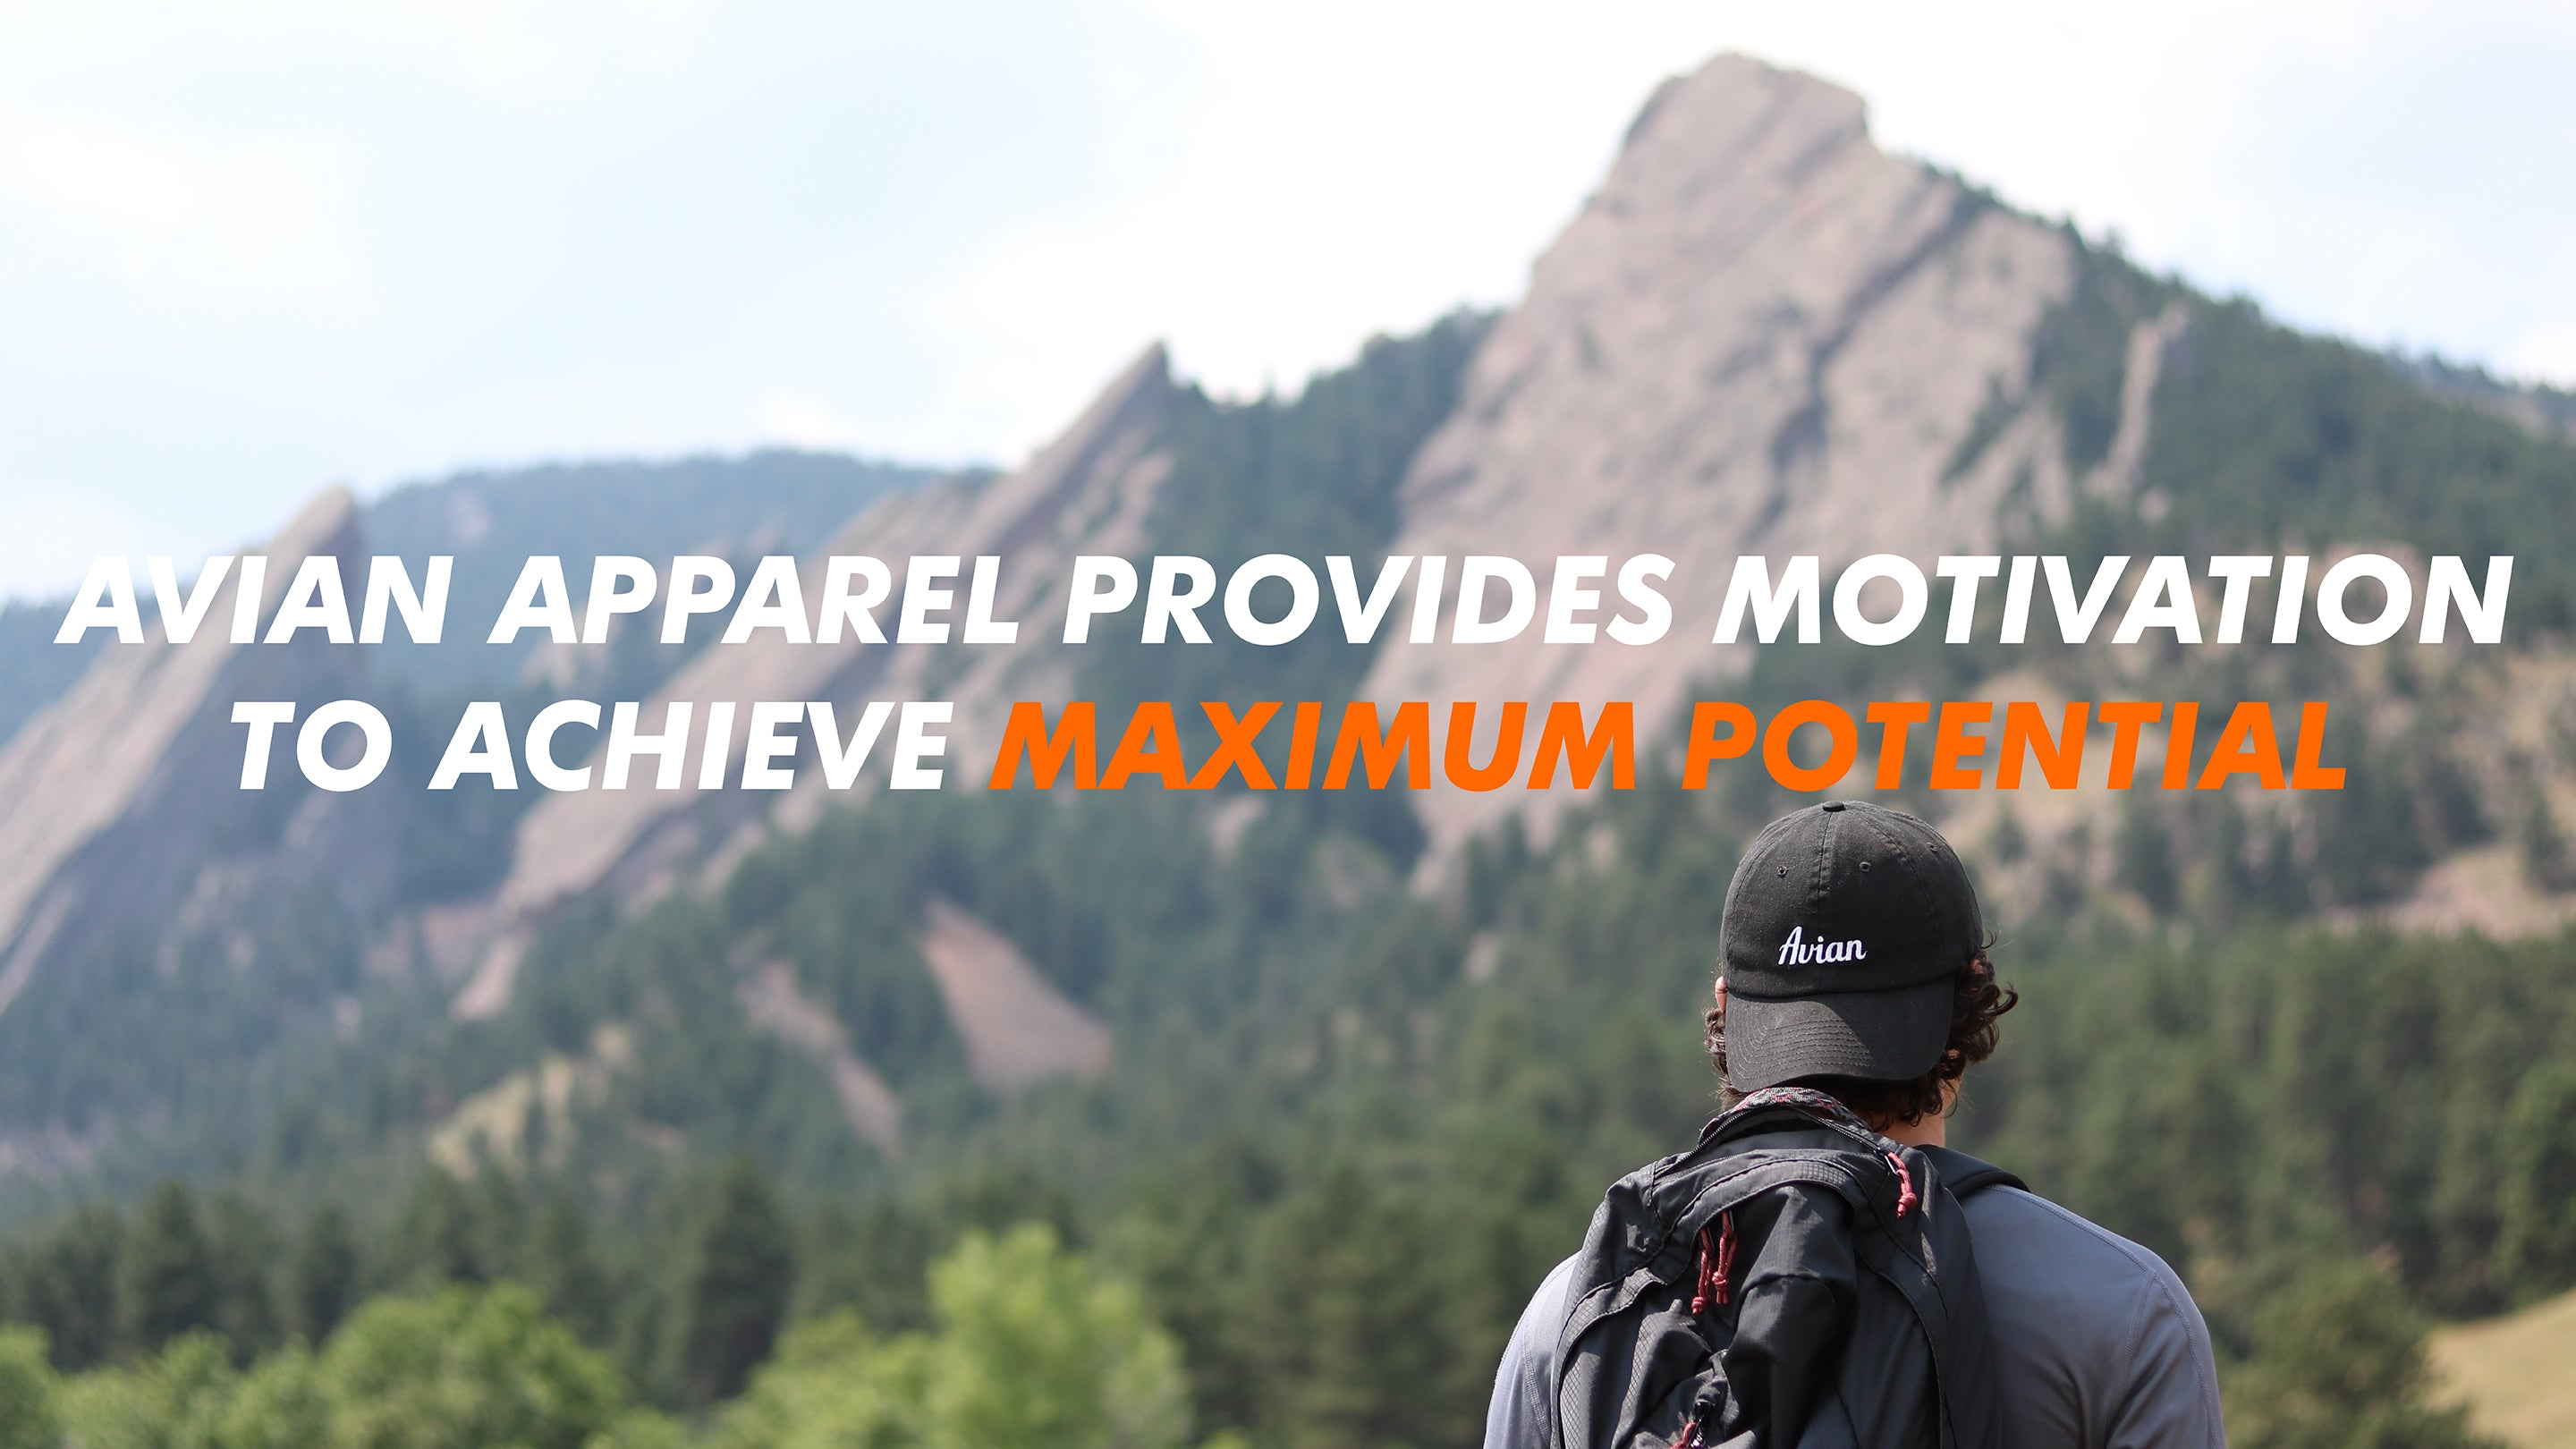 vision statement - Avian Apparel provides motivation to achieve MAXIMUM POTENTIAL